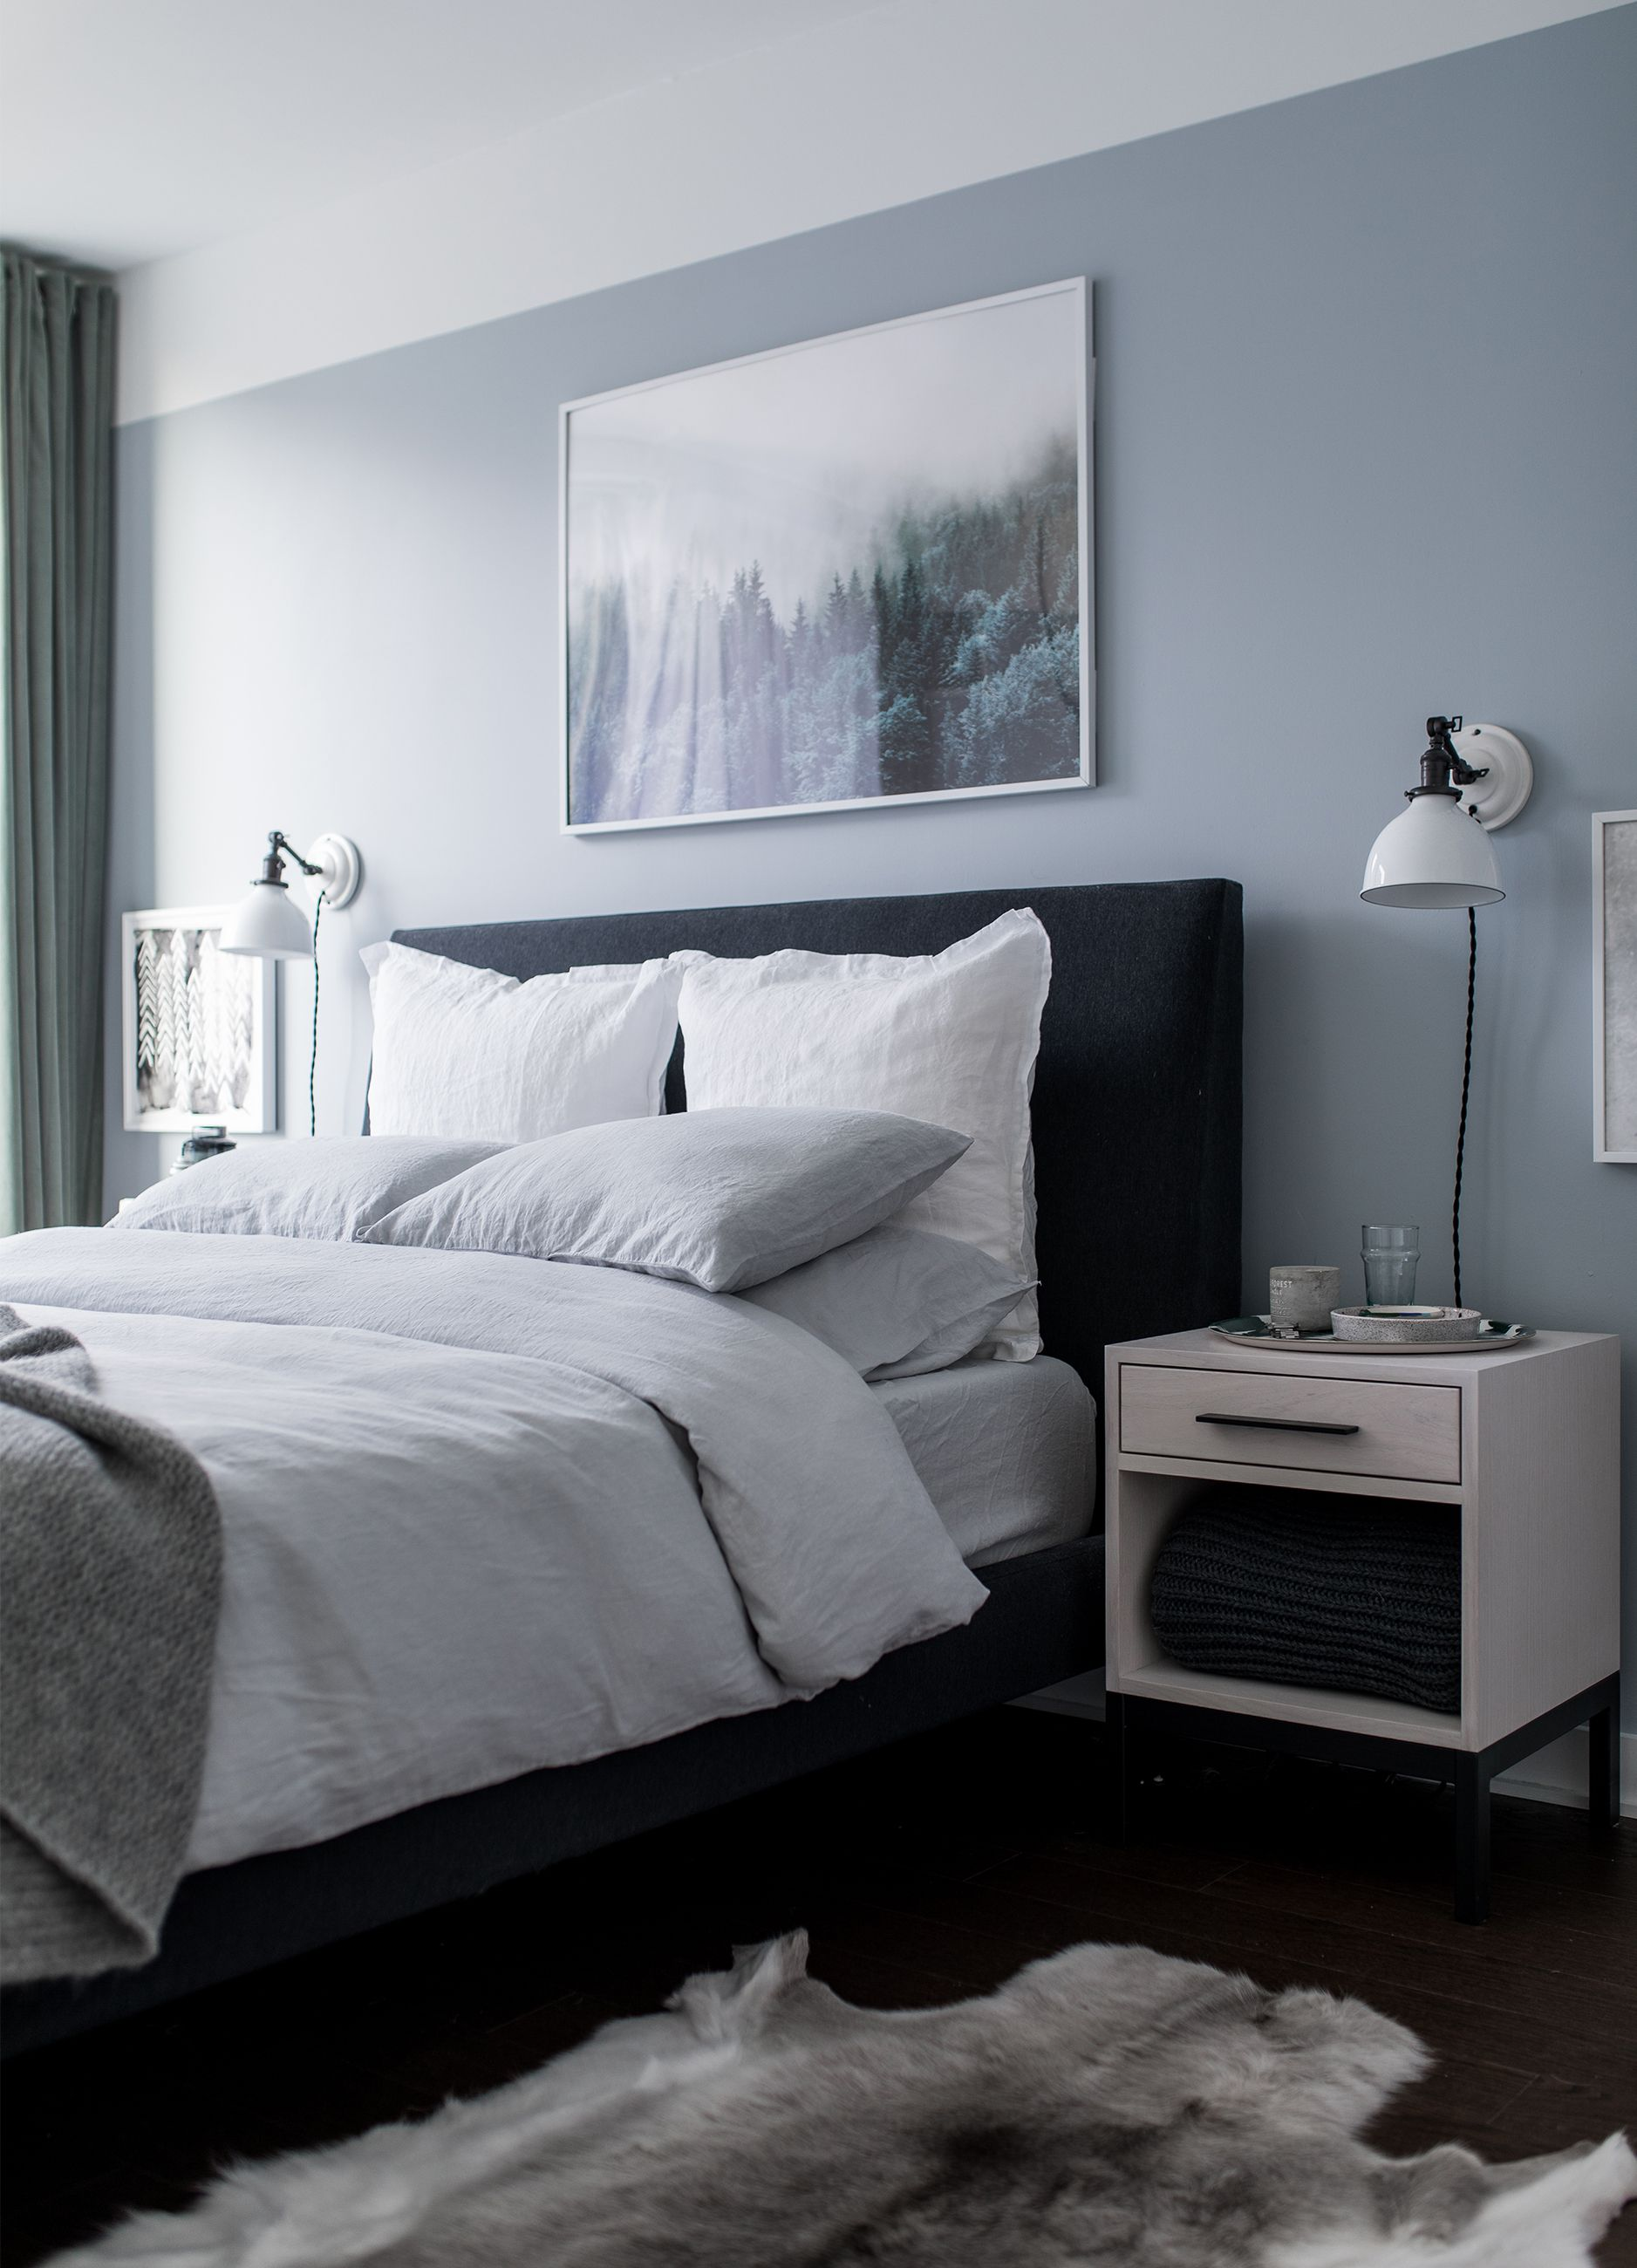 Check out a post I did on morning routine to help me feel less tired during the day, my bedroom makeover helped too here this grey bedroom with soft linen bedding, euro sham pillows, School House Electric white industrial pendent lights paired with green velvet curtains brings calm to the design of the room. Decor is so important in the bedroom, even the reindeer hides are so soft under foot!